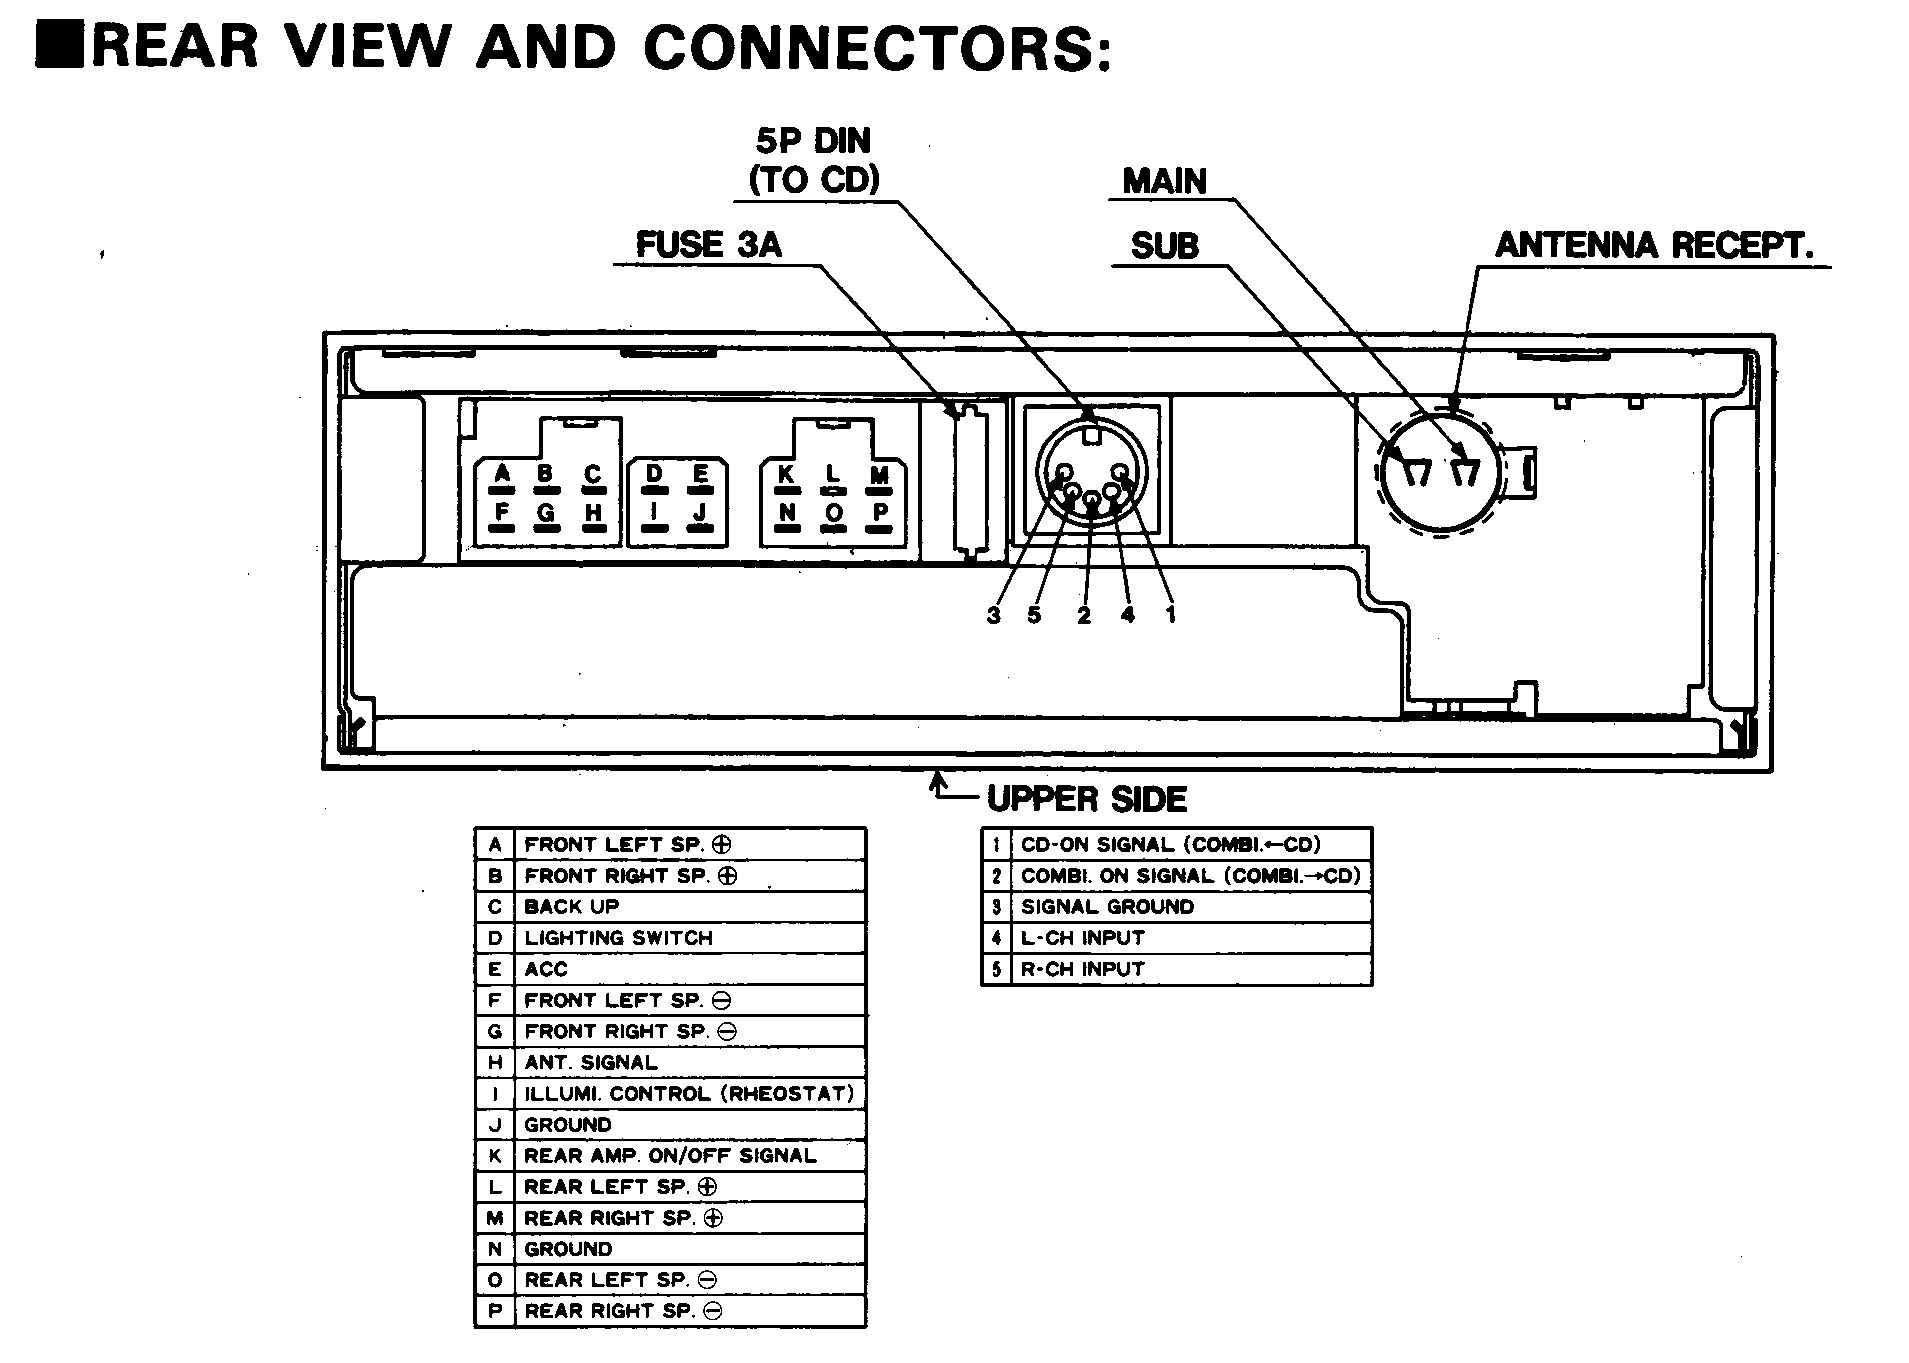 bose car stereo wiring diagrams library of wiring diagrams u2022 rh sv ti com Clarion Car Stereo Wiring Diagram Car Stereo Color Wiring Diagram